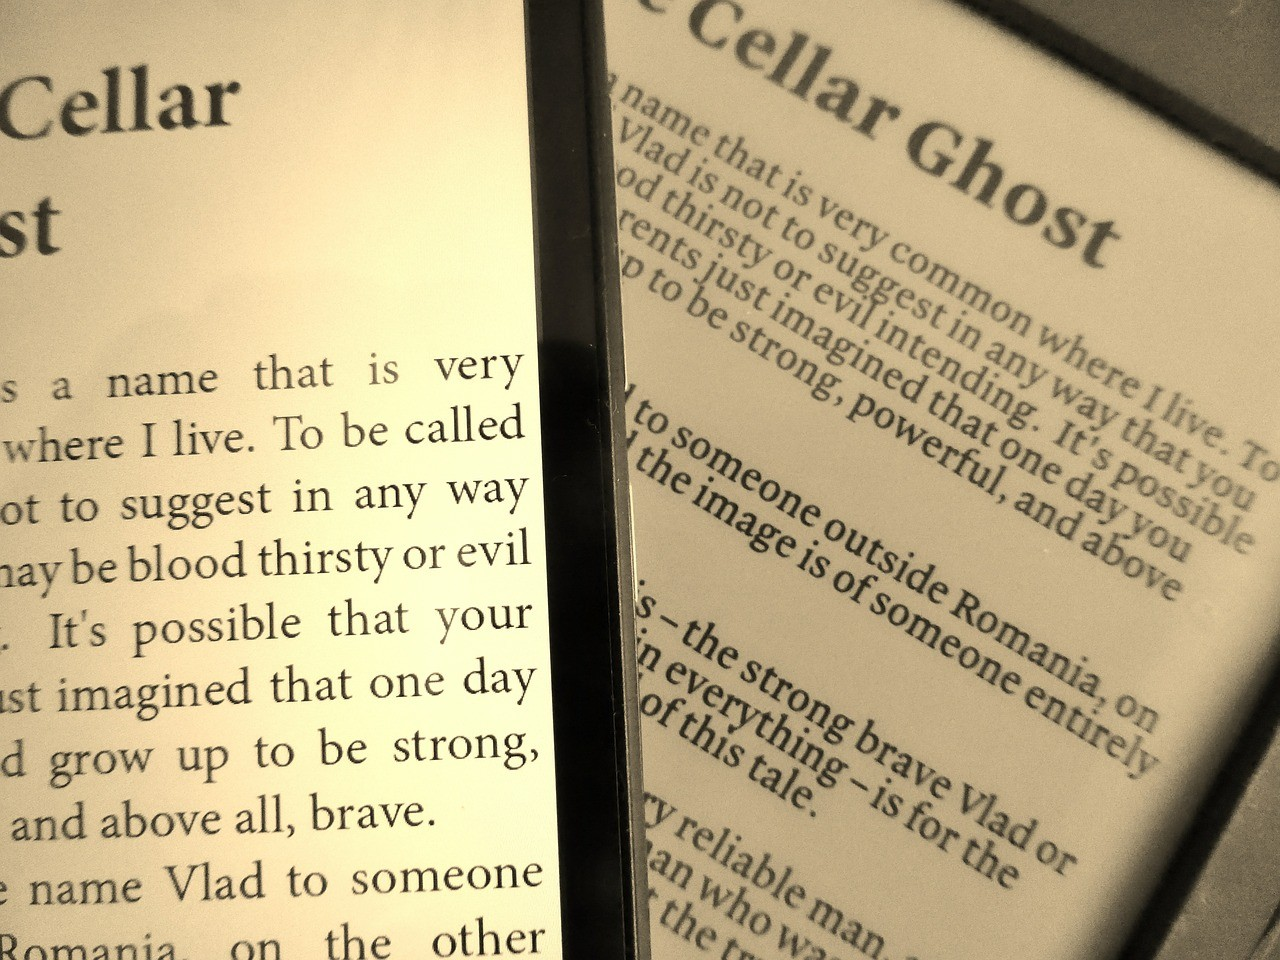 How to Change the Font Size on a Kindle Paperwhite